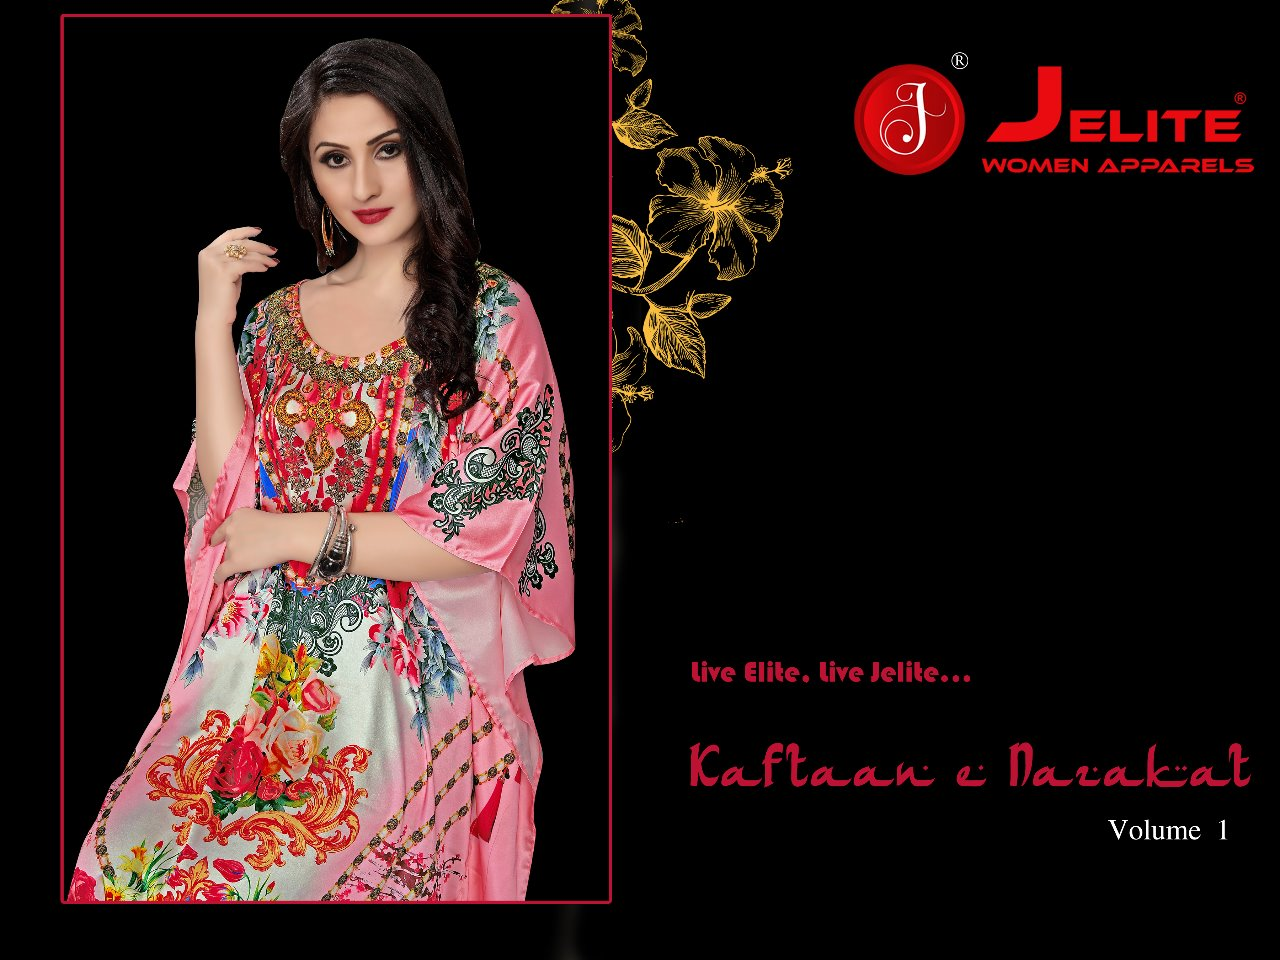 jelite kaftan e nazakat colorful ready to wear kaftans collection